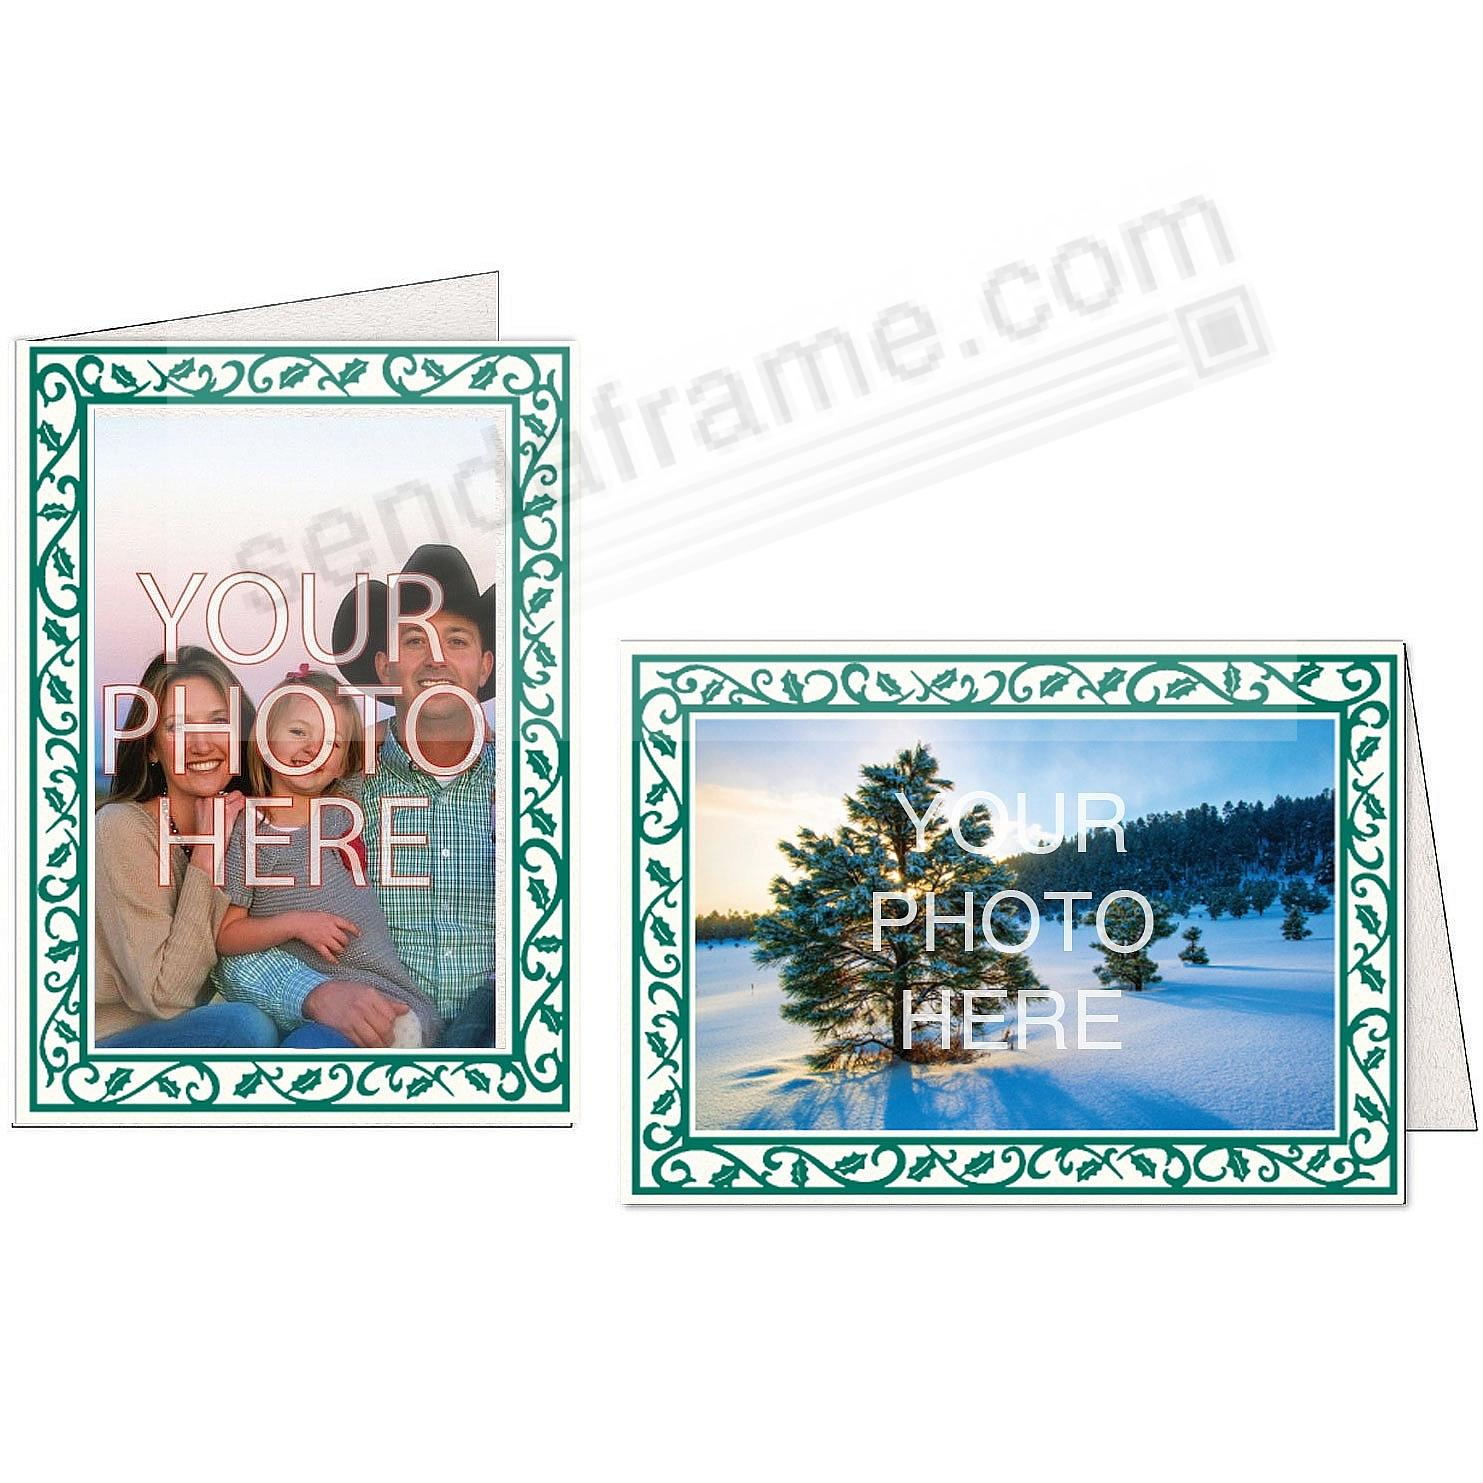 Bright White HOLLY BORDER Photo Insert Card (sold in 10s)